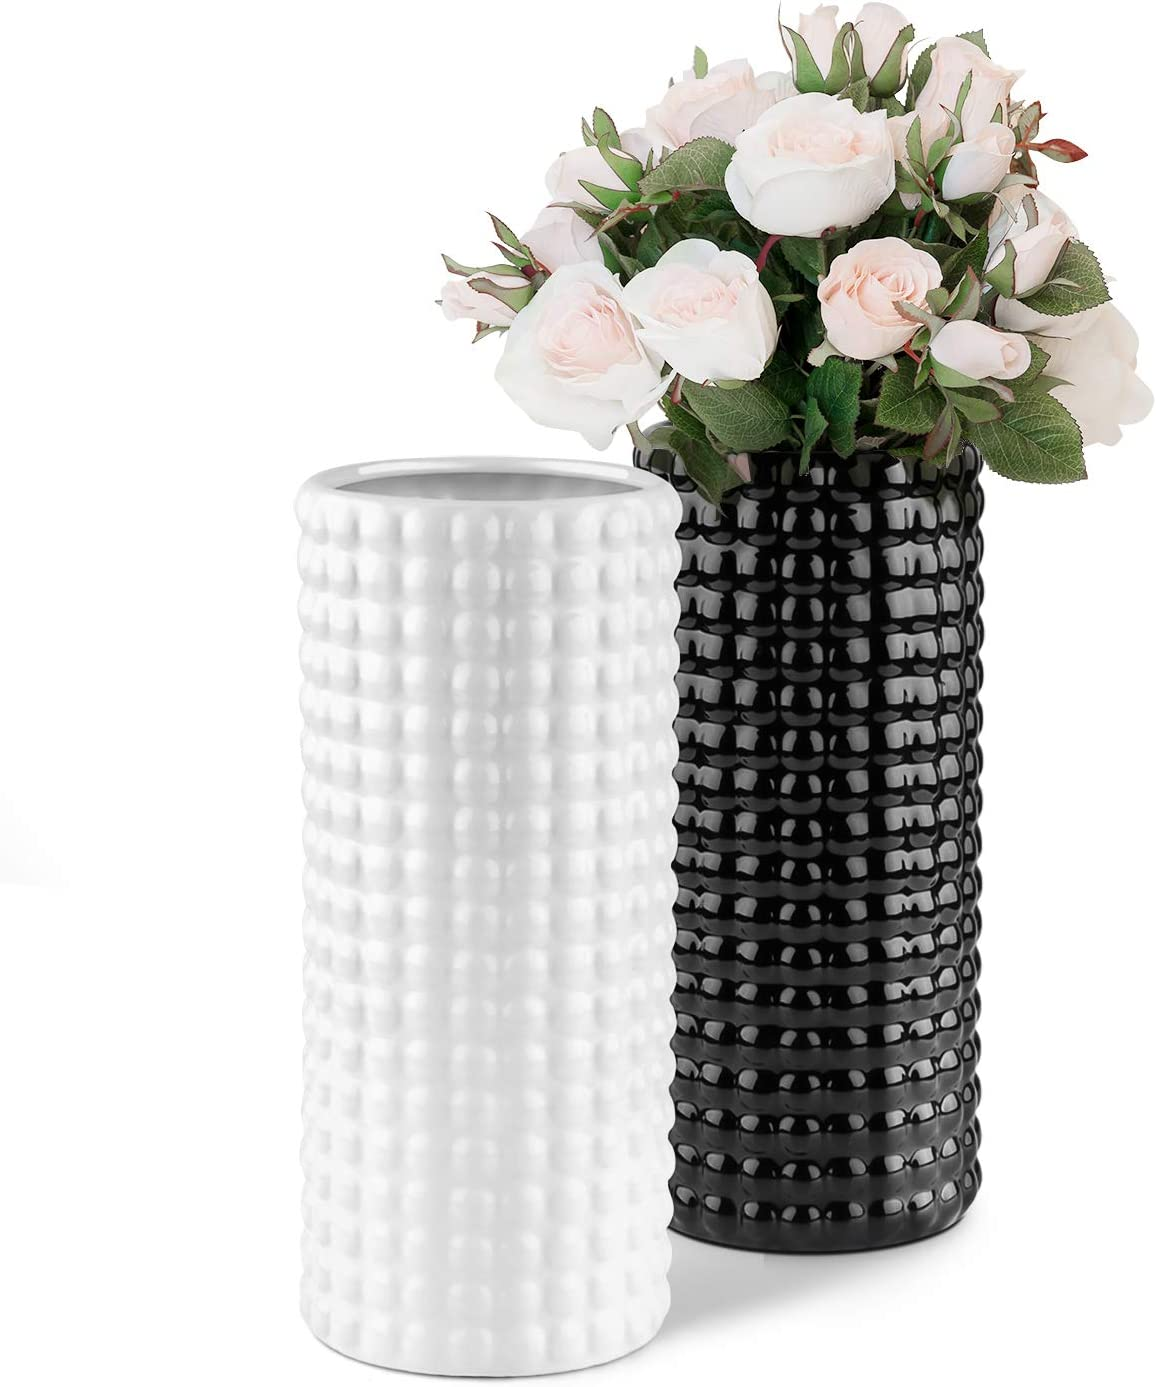 DEXIDUO Ceramic Vase for Flowers, Black and White Cylinder Vase Modern House Farmhouse Decor, Rustic Tall Bud Vase Set of 2 for Home Kitchen Office Centerpiece Living Room Shelf Decorations Accents